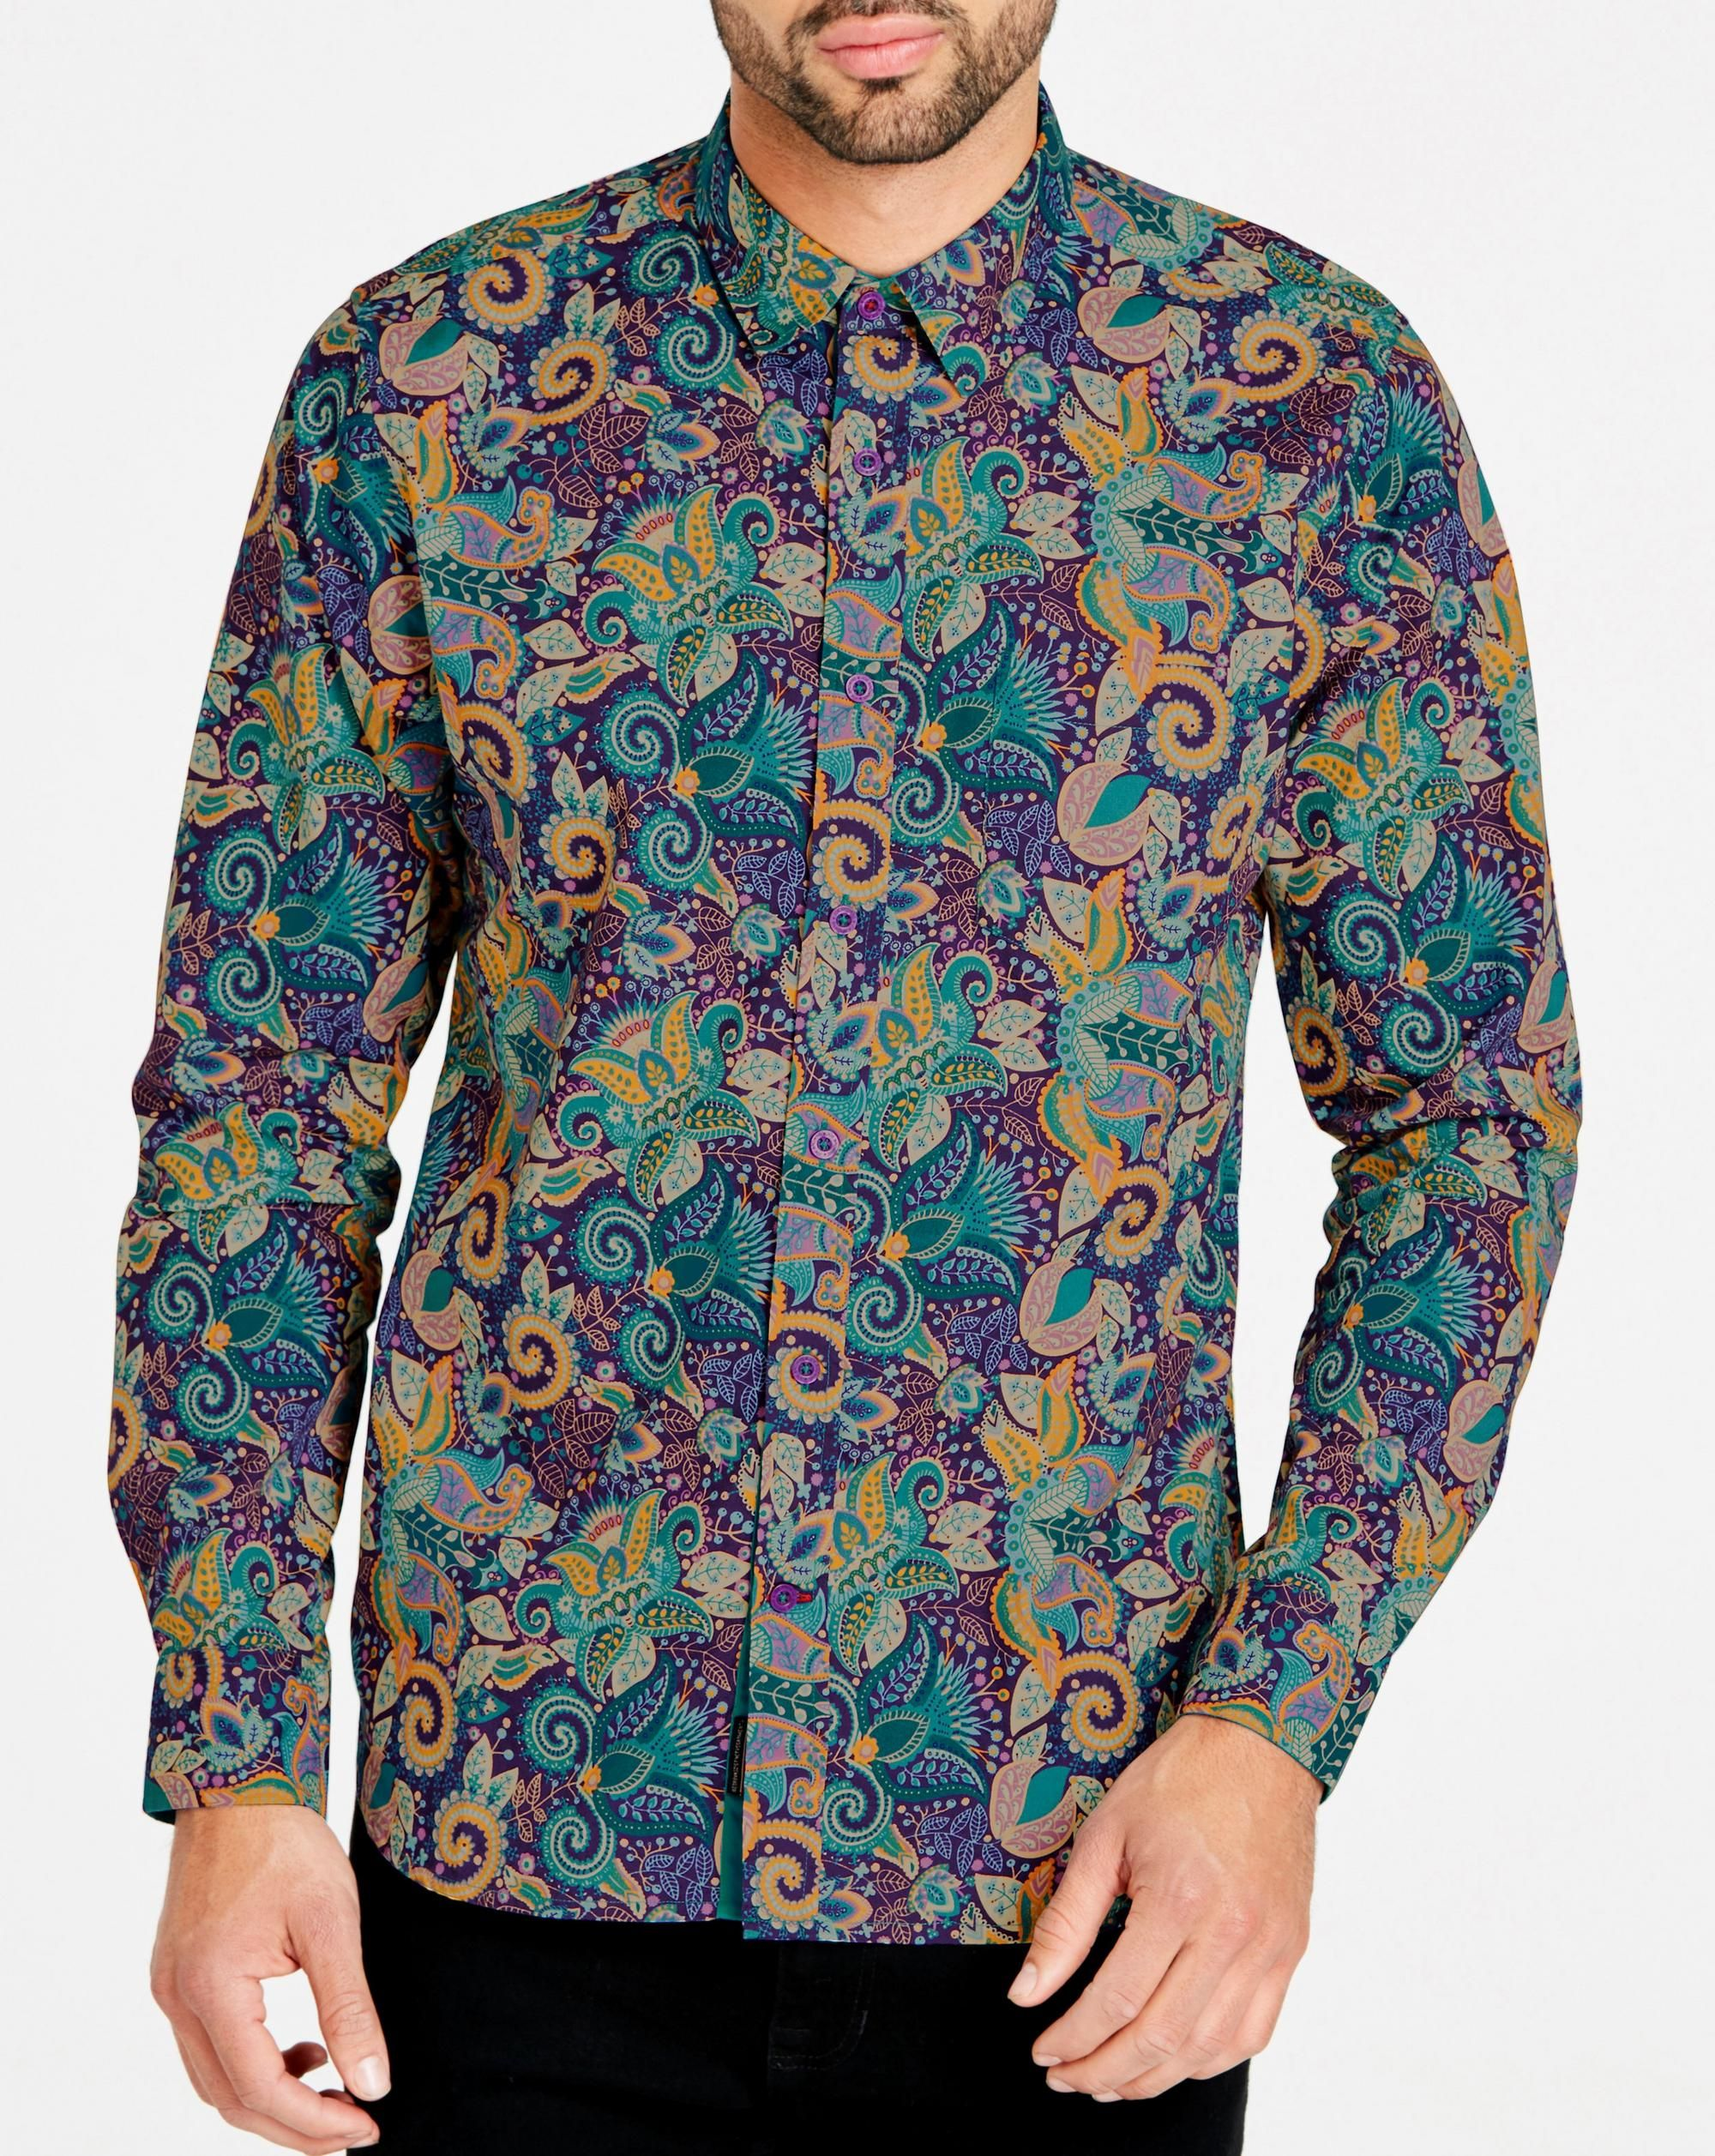 613fb7959f6 1970s Men s Vintage Style Shirts Joe Browns Pop Of Paisley Shirt